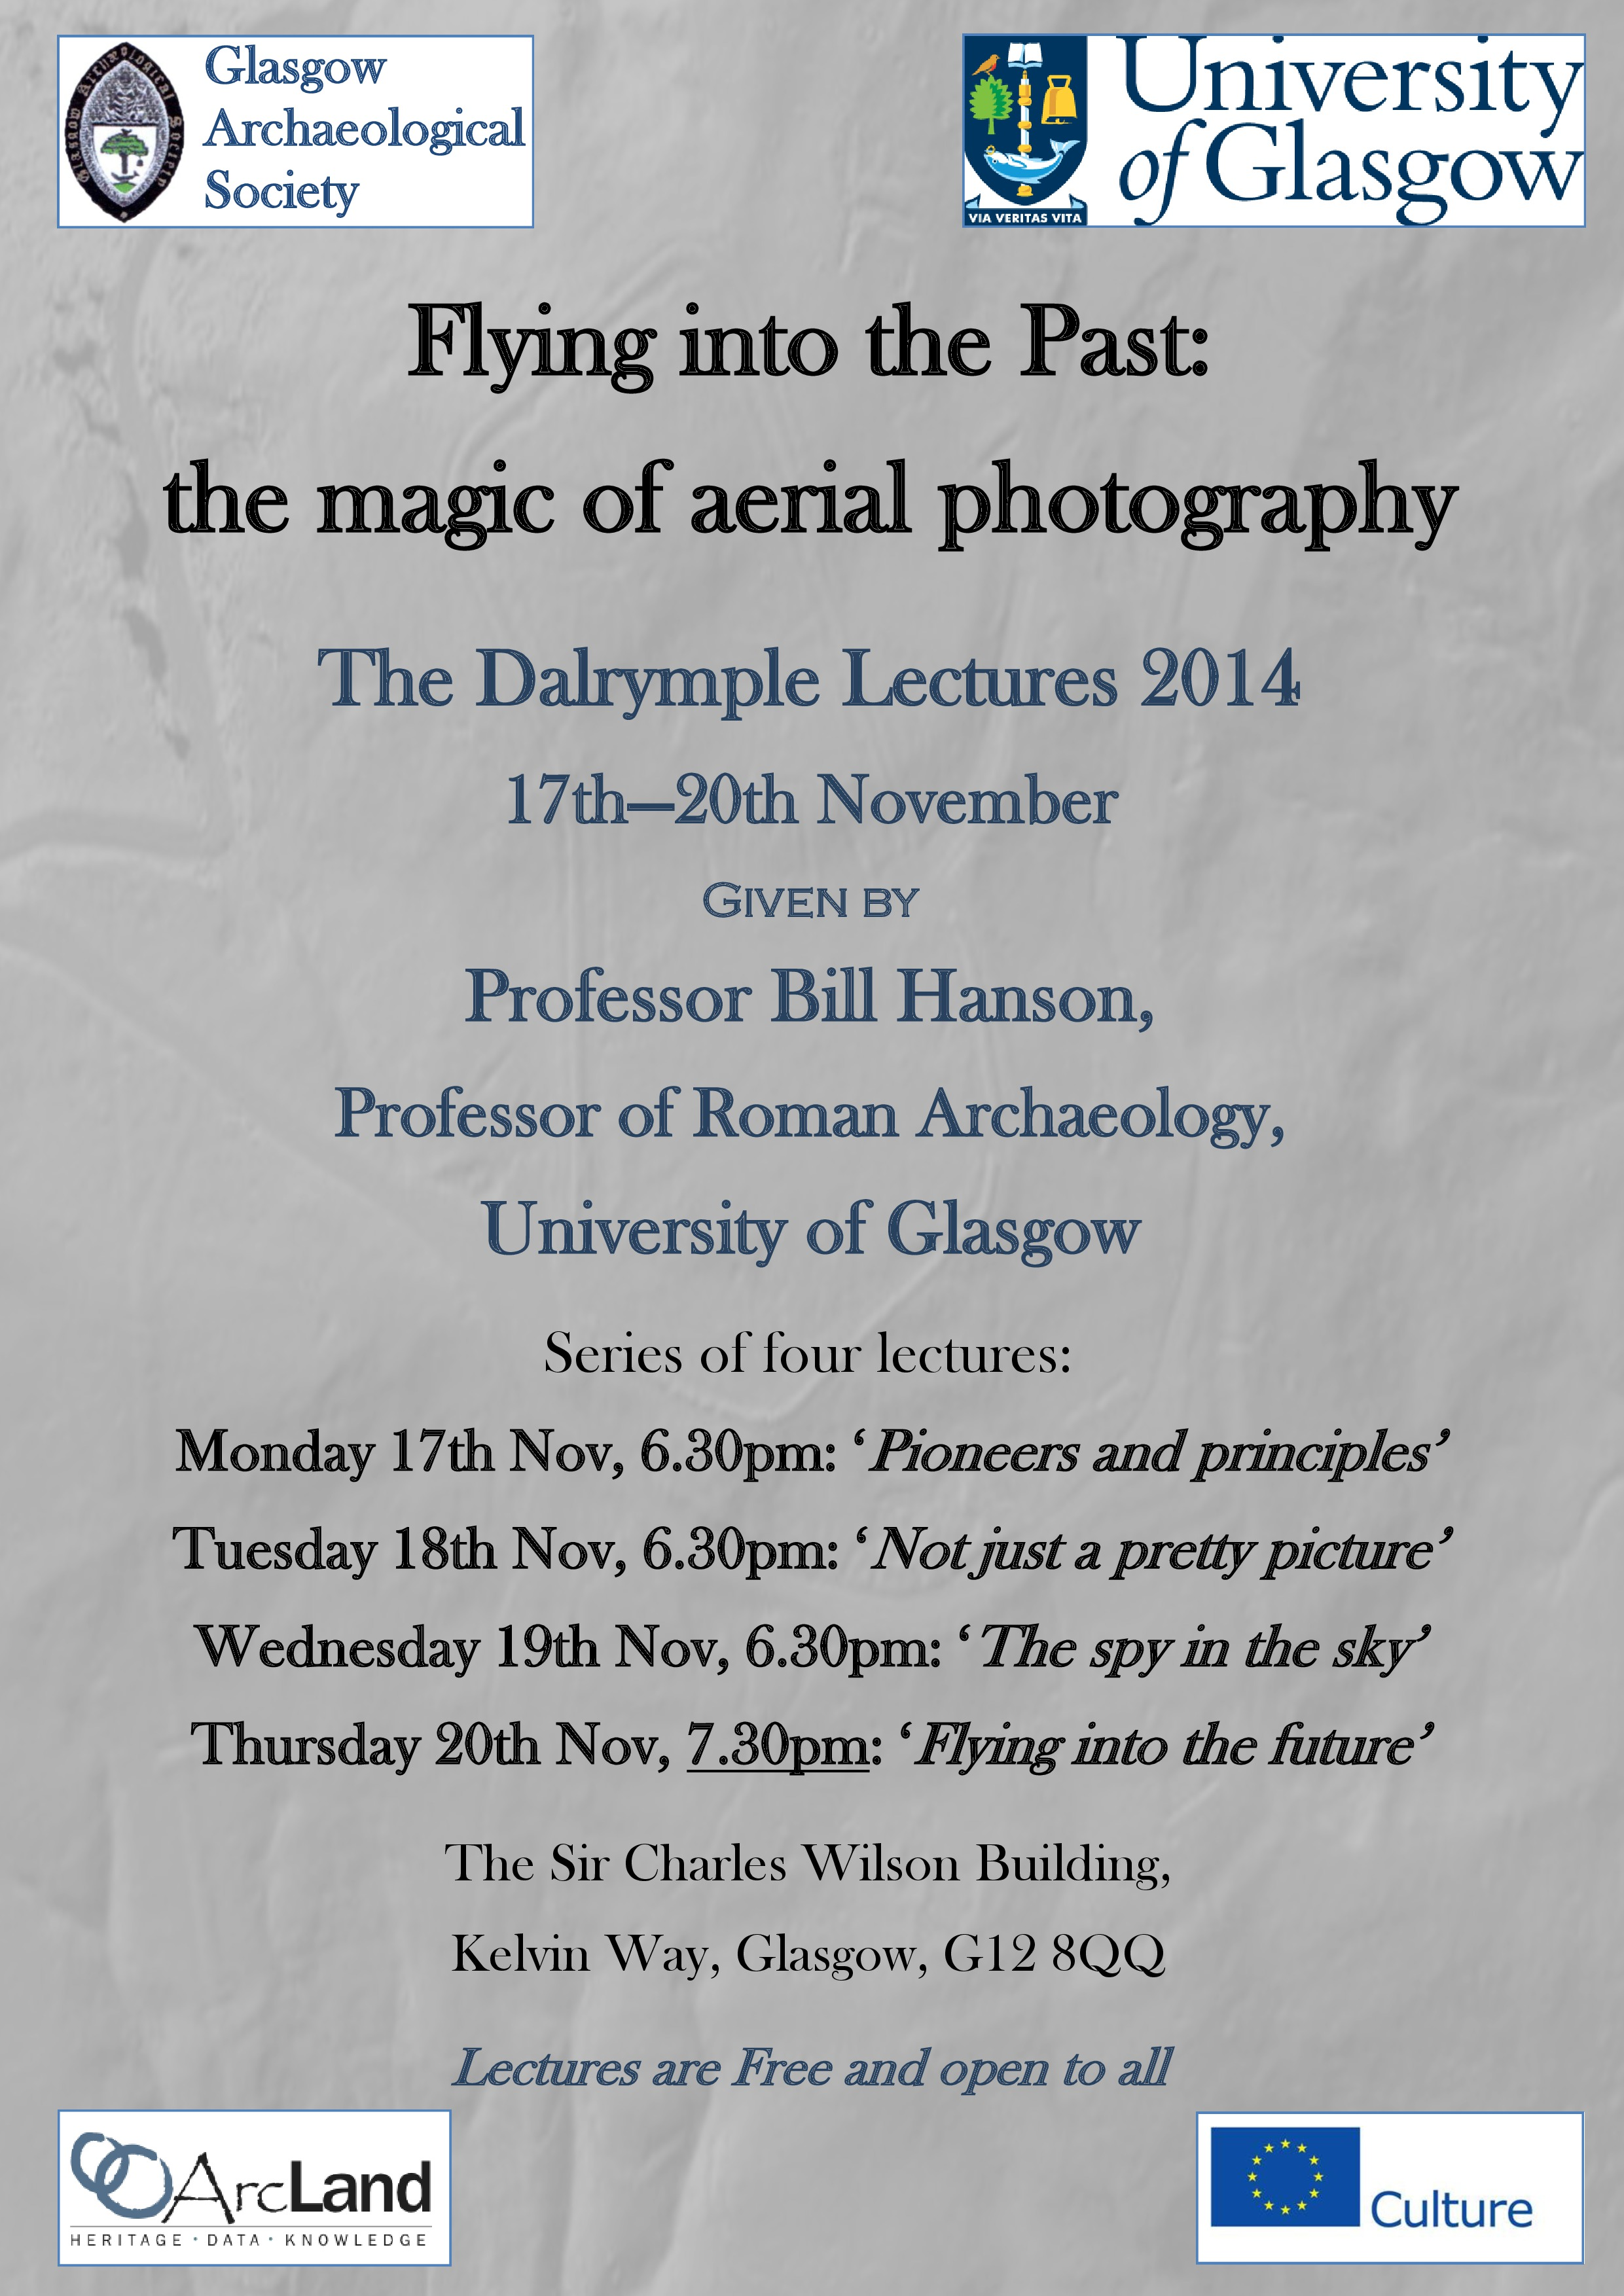 Dalrymple Lectures 2014 (jpg)